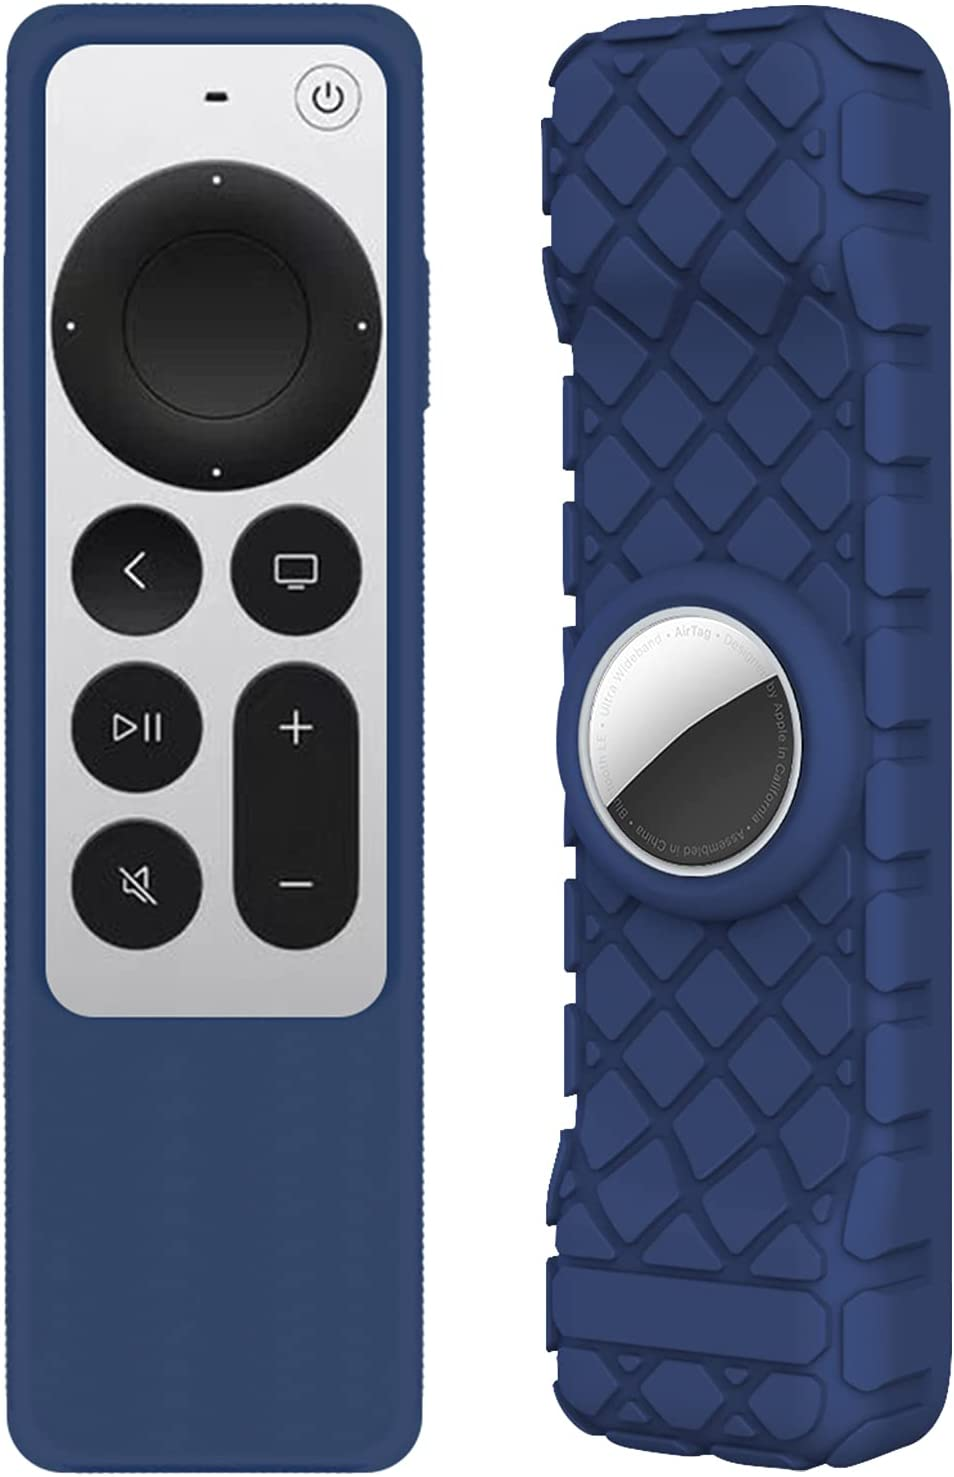 Seltureone Compatible for 2021 Apple TV 4K Siri Remote Cover, 2 in 1 Silicone Protective Case Sleeve with Holder Cover for AirTags and TV HD Siri Remote (2nd Generation), Shock Absorption, Blue